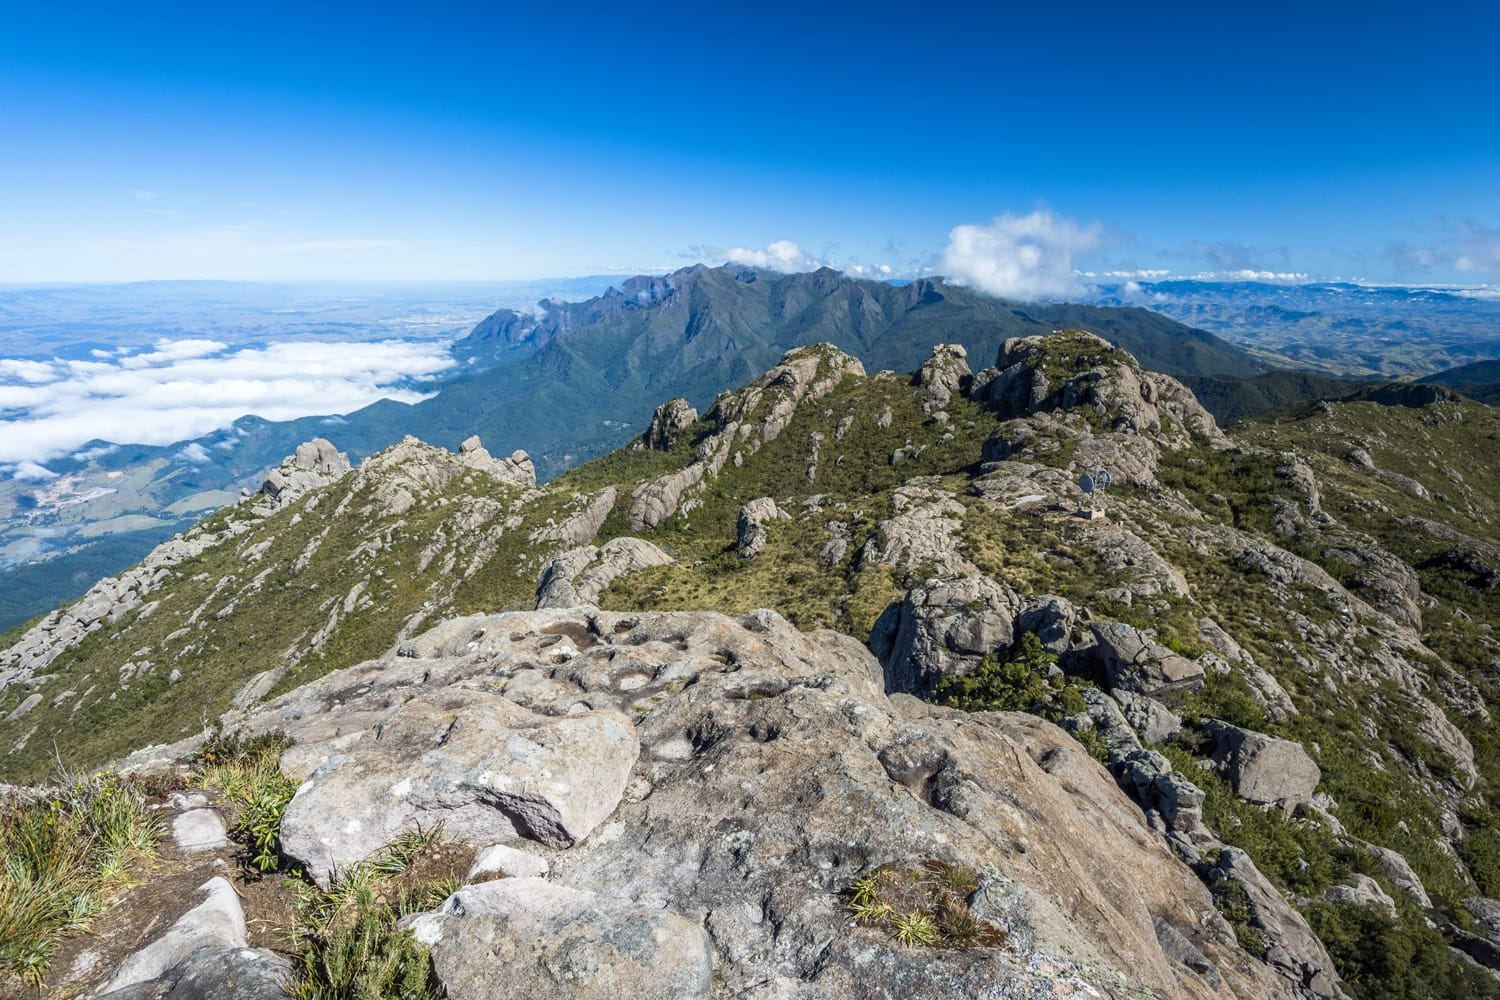 View from the summit of Morro do Couto (Couto Mountain) while hiking in Itatiaia National Park, Rio de Janeiro, Brazil